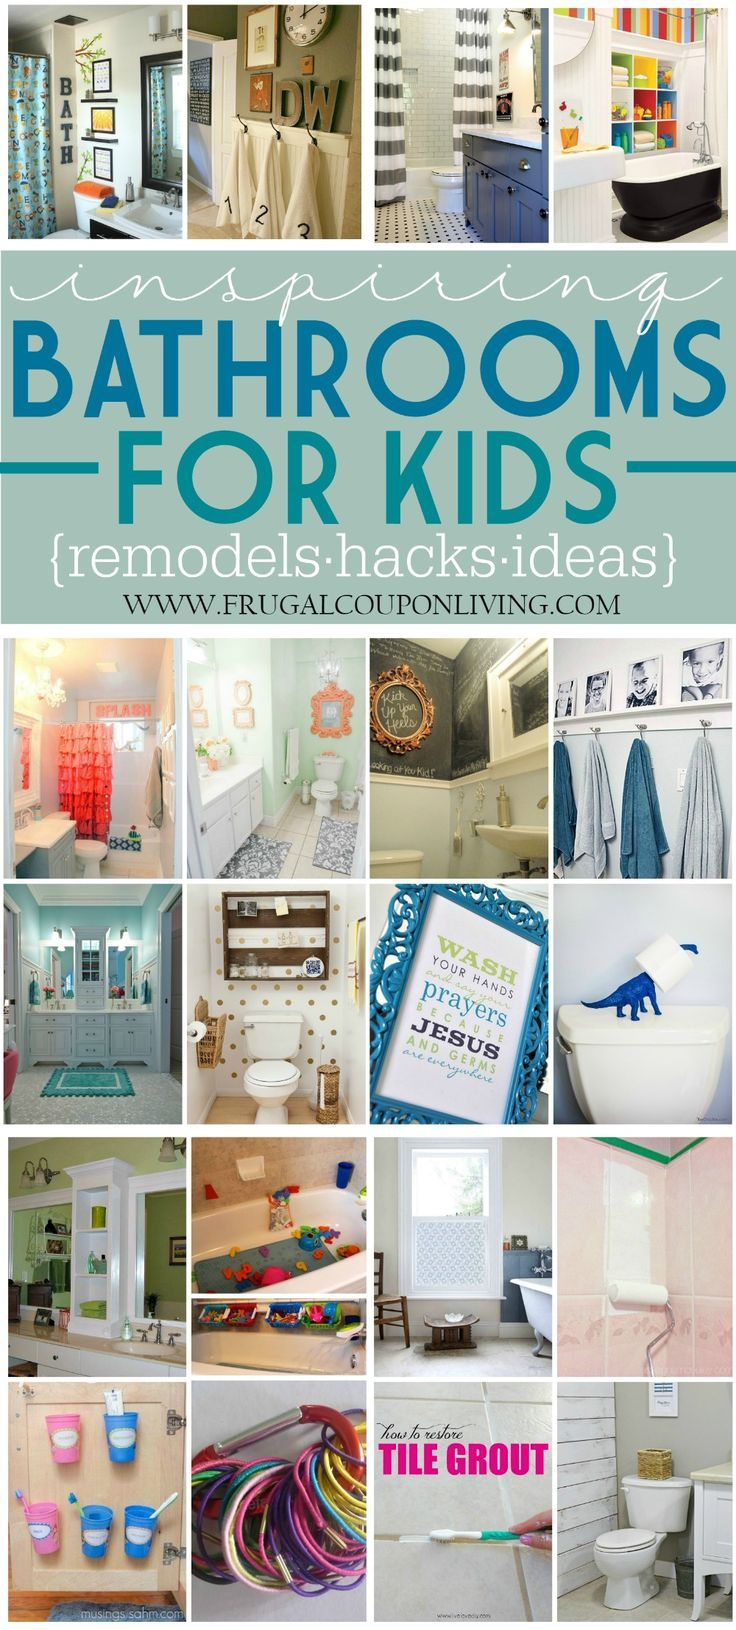 inspiring kids bathrooms decorations remodels and hacks on frugal coupon living girls bathroom - Bathroom Decorating Ideas For Guys